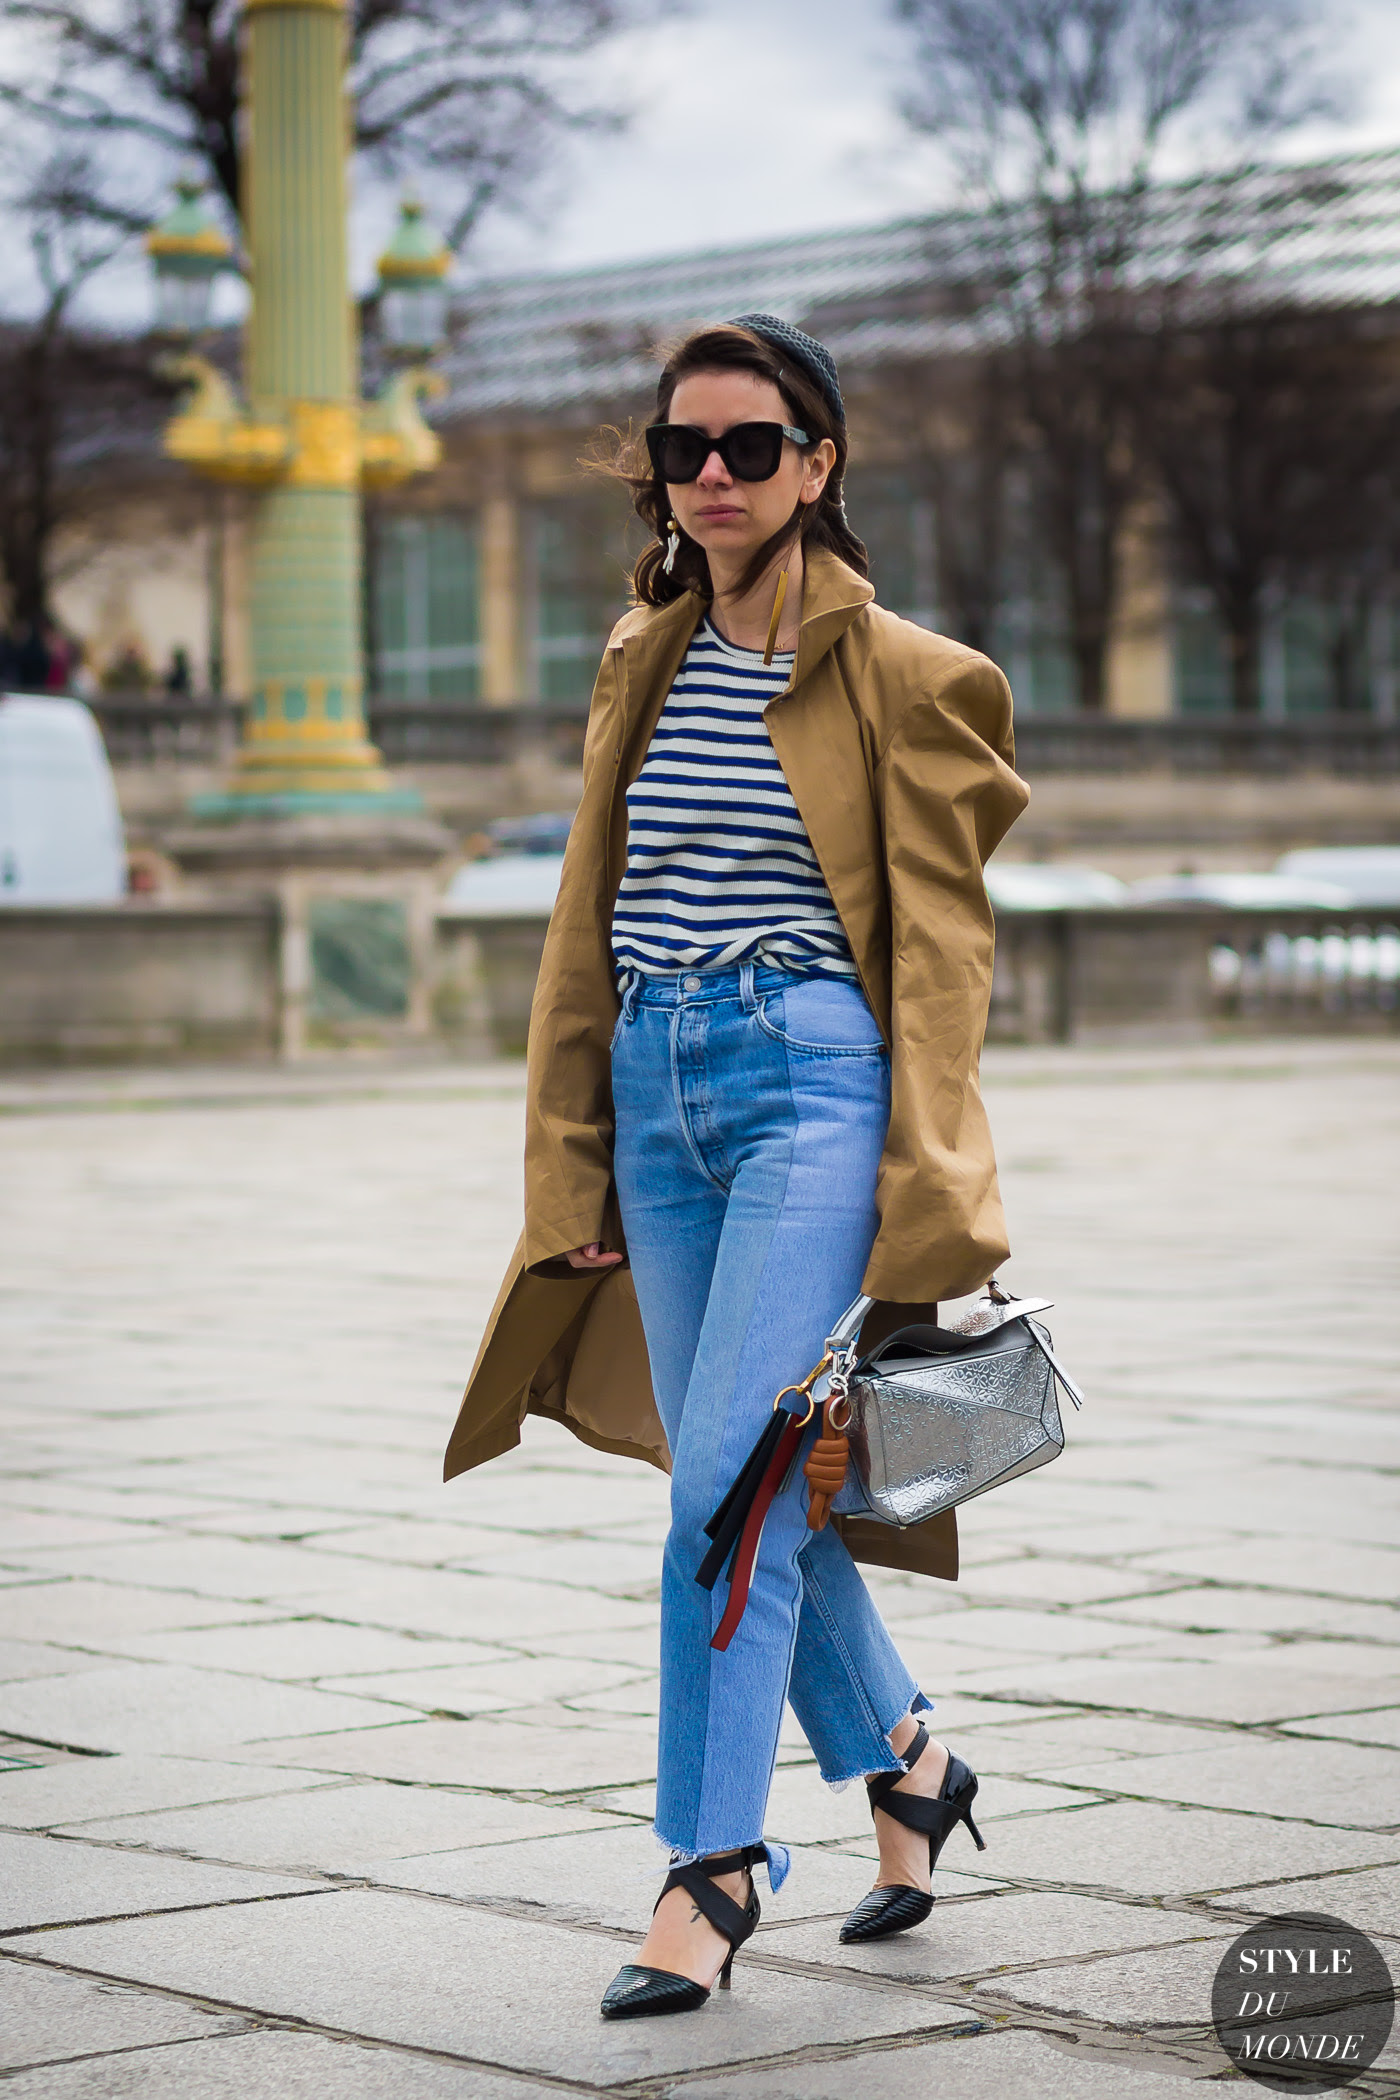 natasha-goldenberg-by-styledumonde-street-style-fashion-photography